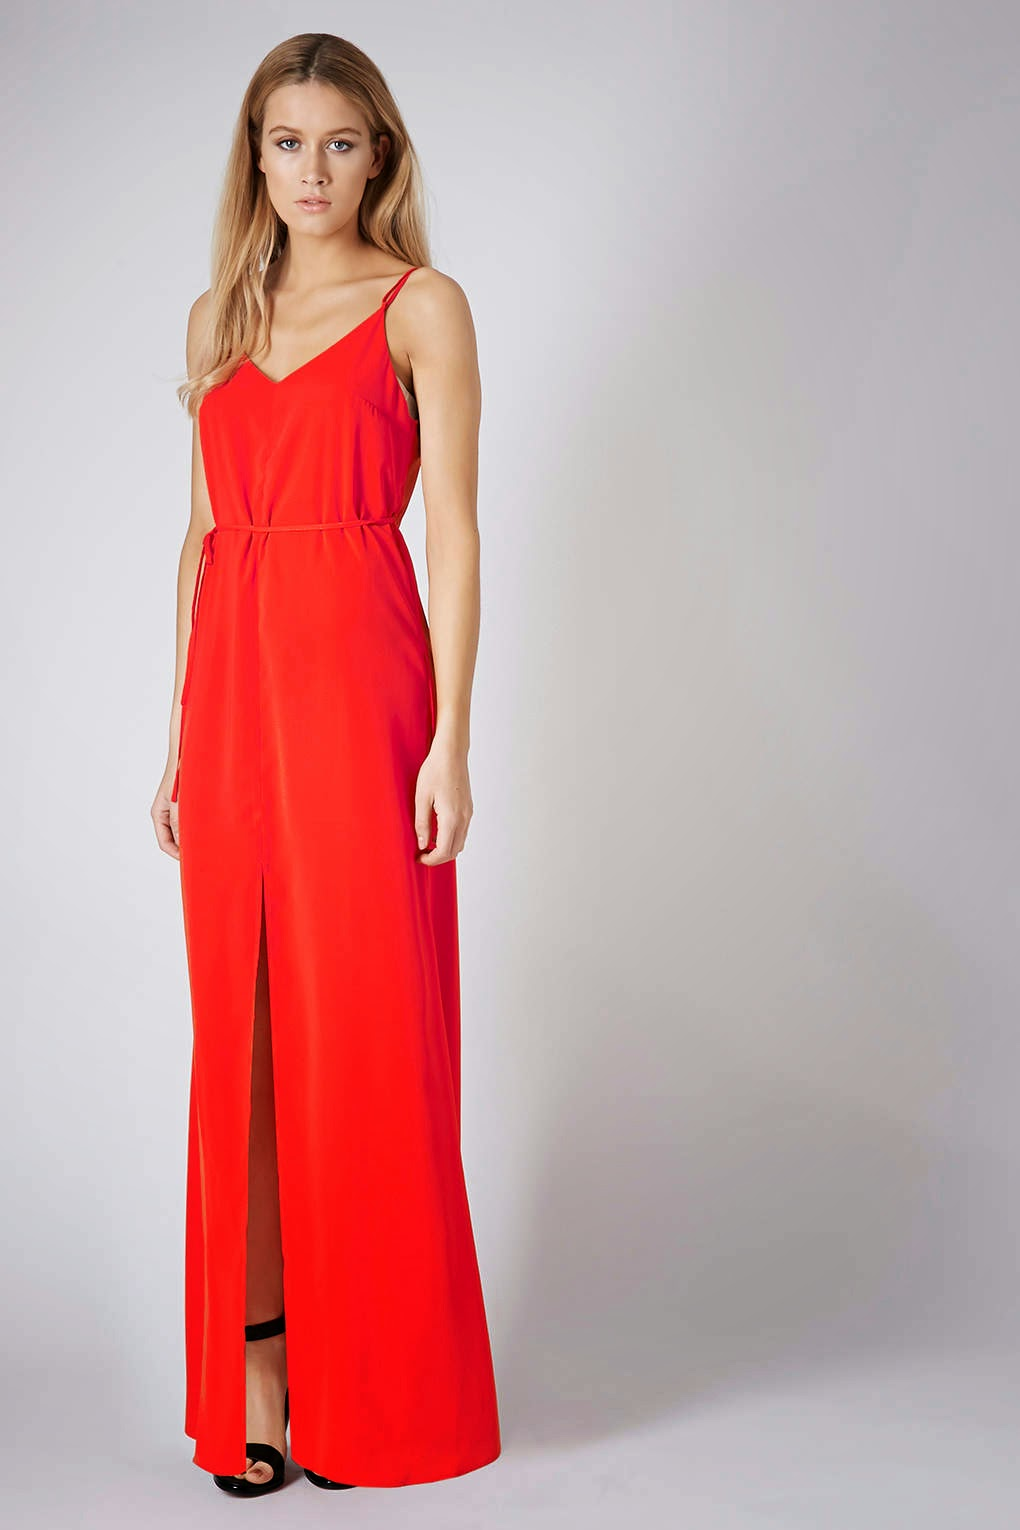 red strappy maxi dress